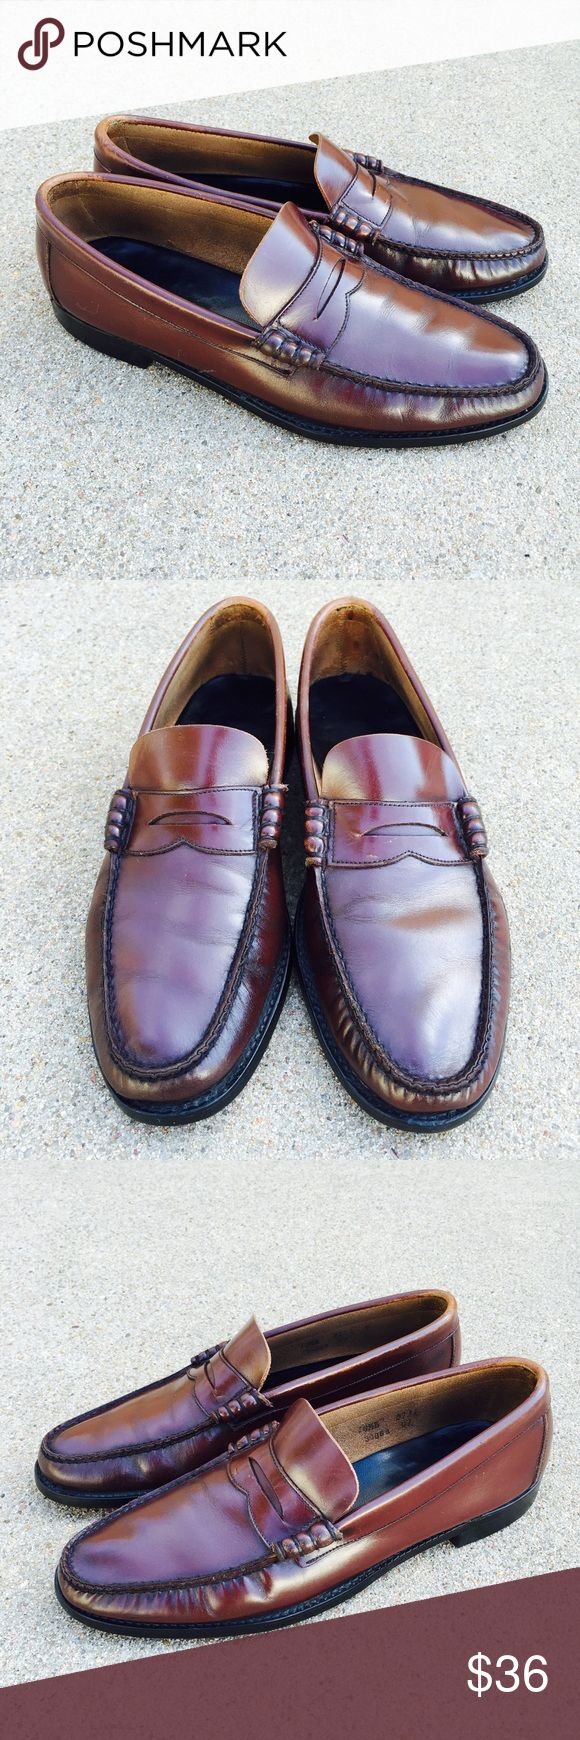 Florsheim Men's Shoes Burgundy Leather Slip On Lovely Florsheim mens shoes neolite burgundy leather slip on loafer moc toe Size 10.5B Condition. Pre-owned, wear and some fading, inside and wear also on outsoles and heels. Florsheim Shoes Loafers & Slip-Ons